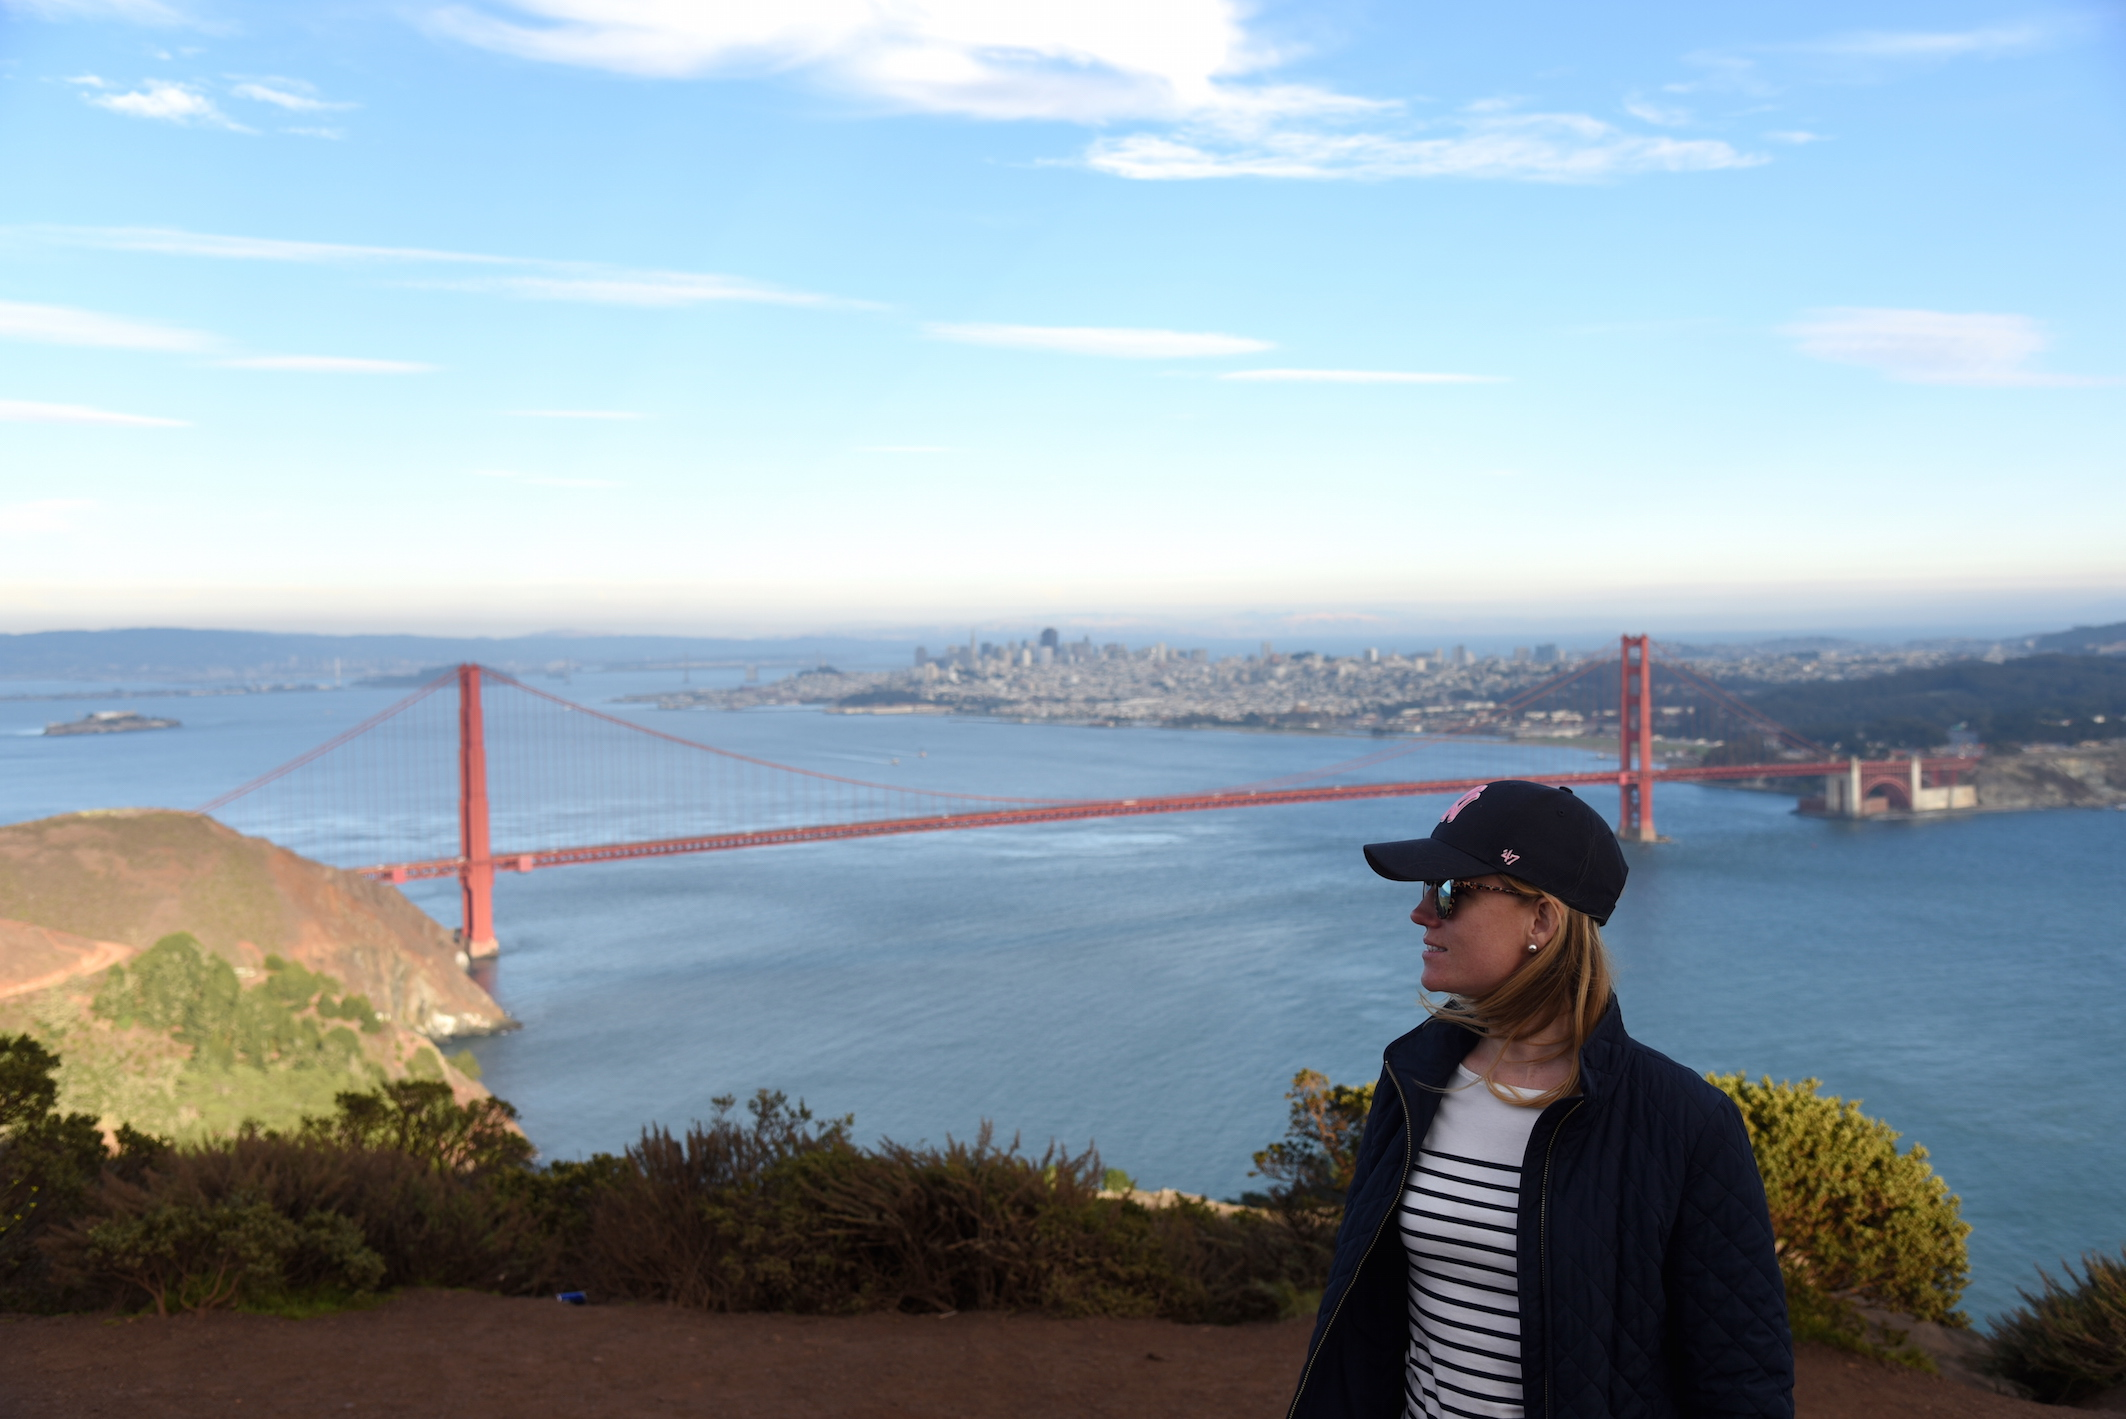 Fashion Lifestyle Travel blogger visiting San Francisco